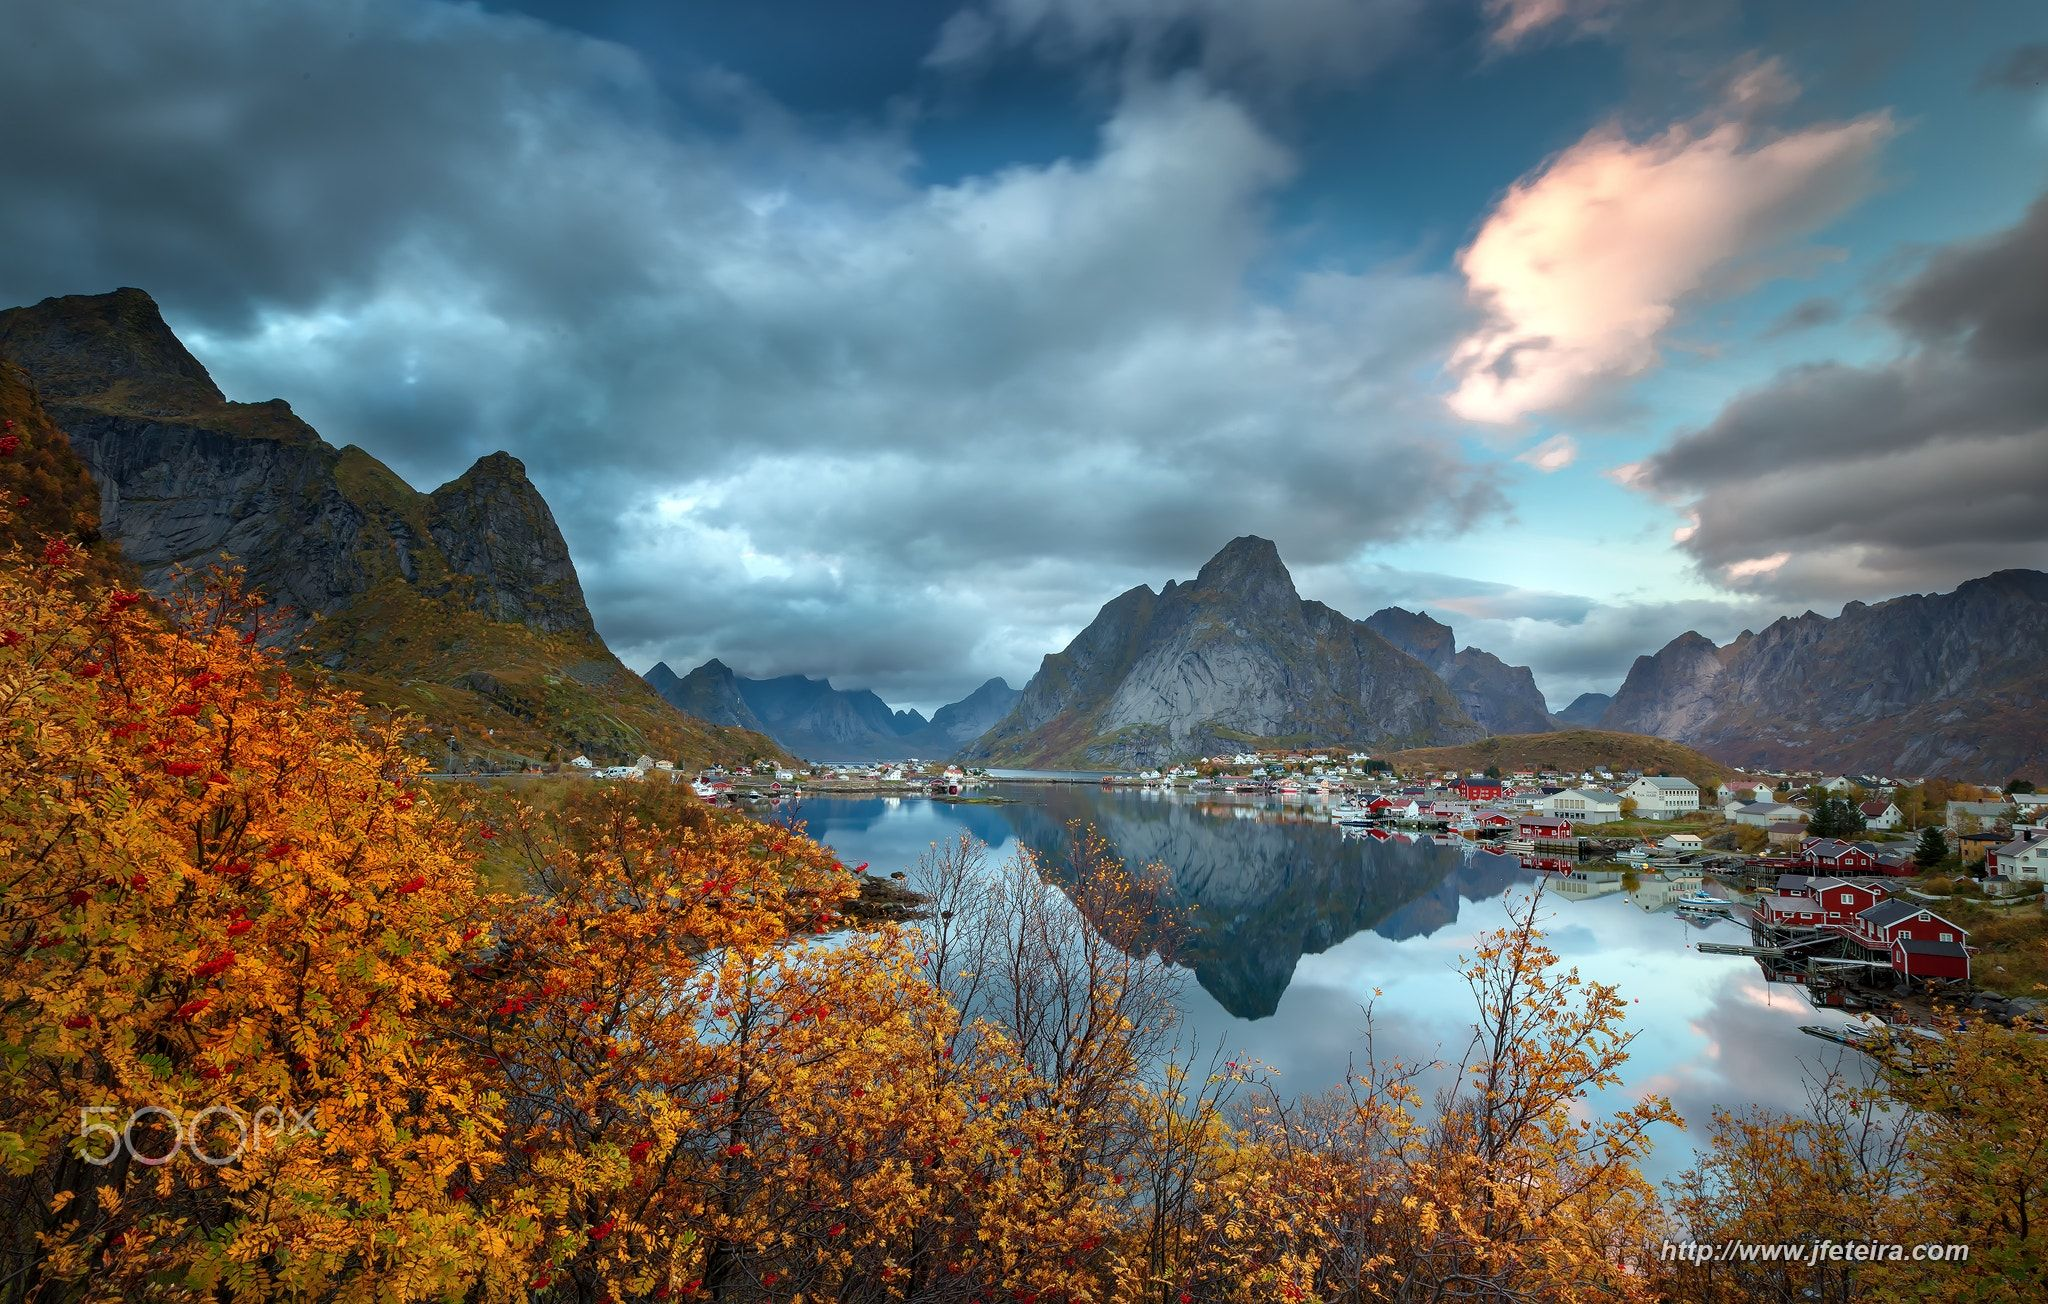 Golden Reine - This is my first photo I publish the my trip to Norway. my intention was of capturing maximum colors of fall, but when I arrived to Reine all expectations I had imagined were too small for the scenario I found.  More photos in http://www.jfeteira.com